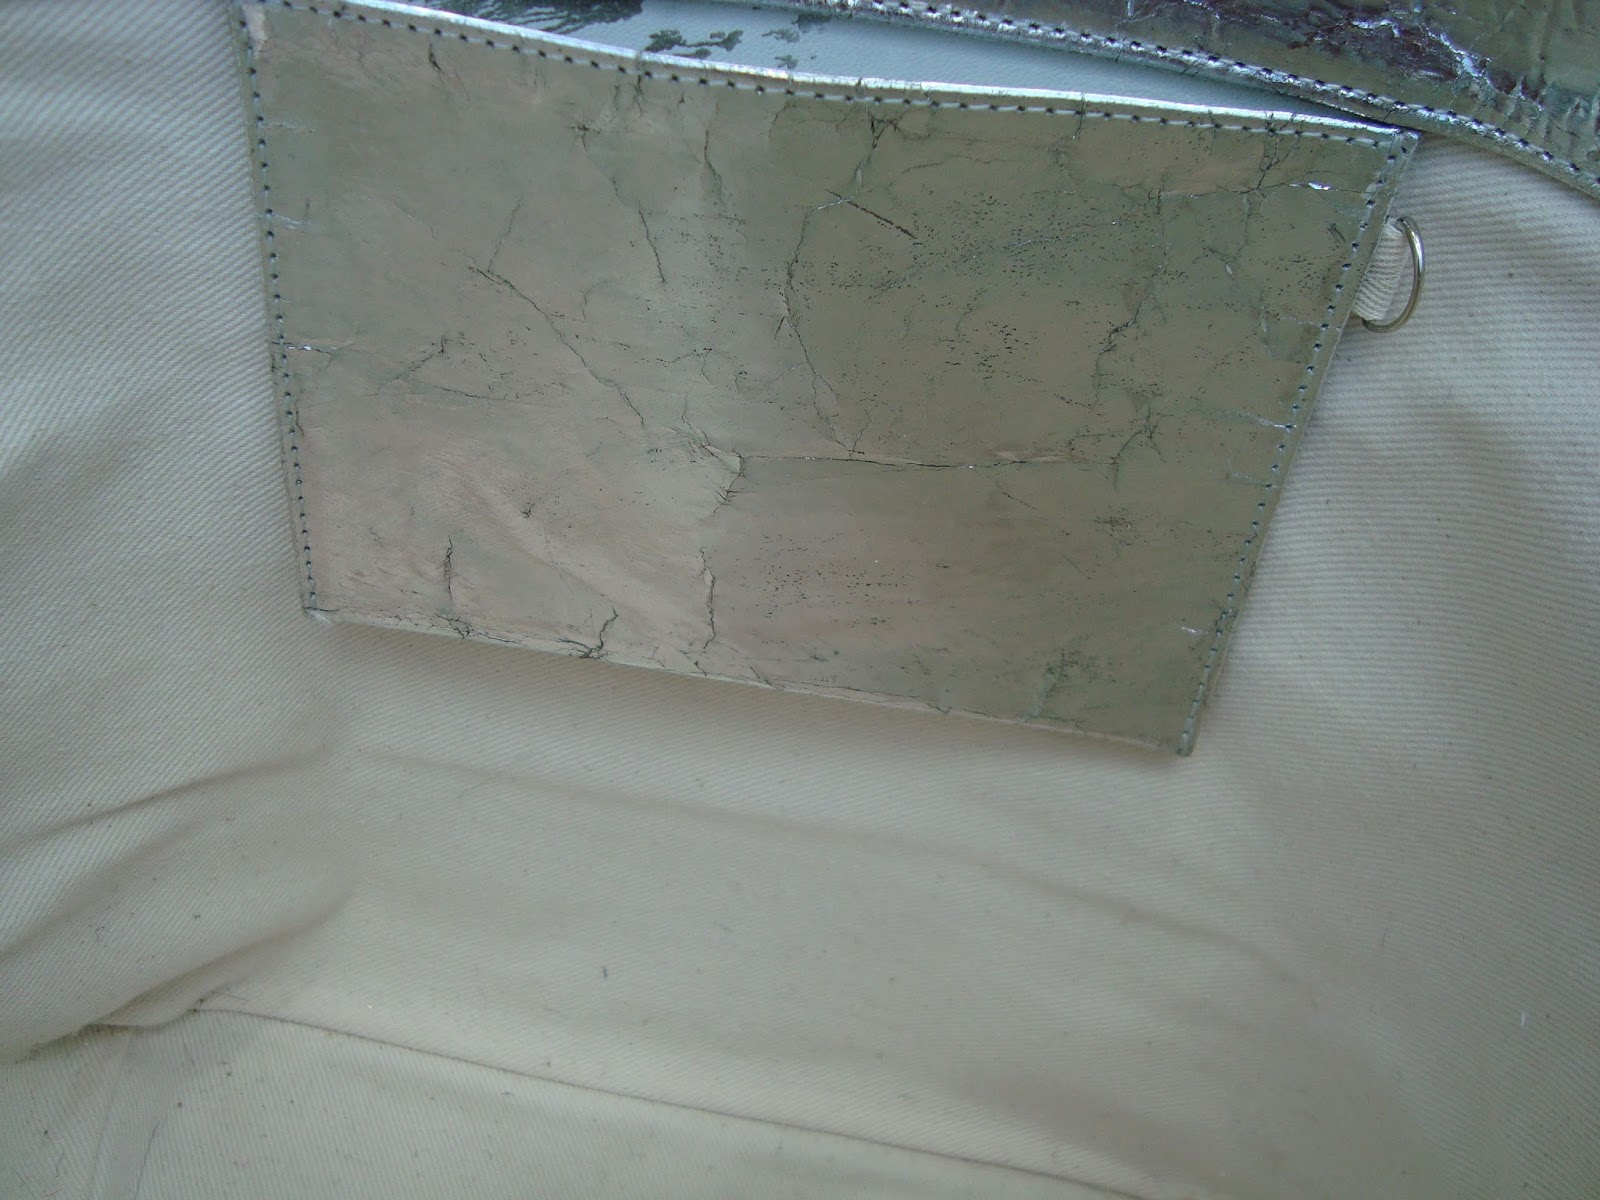 bcc7580d0f4 VANESSA BRUNO MEDIUM SILVER GOAT LEATHER CABAS with Sequins. Condition   Used, in excellent condition